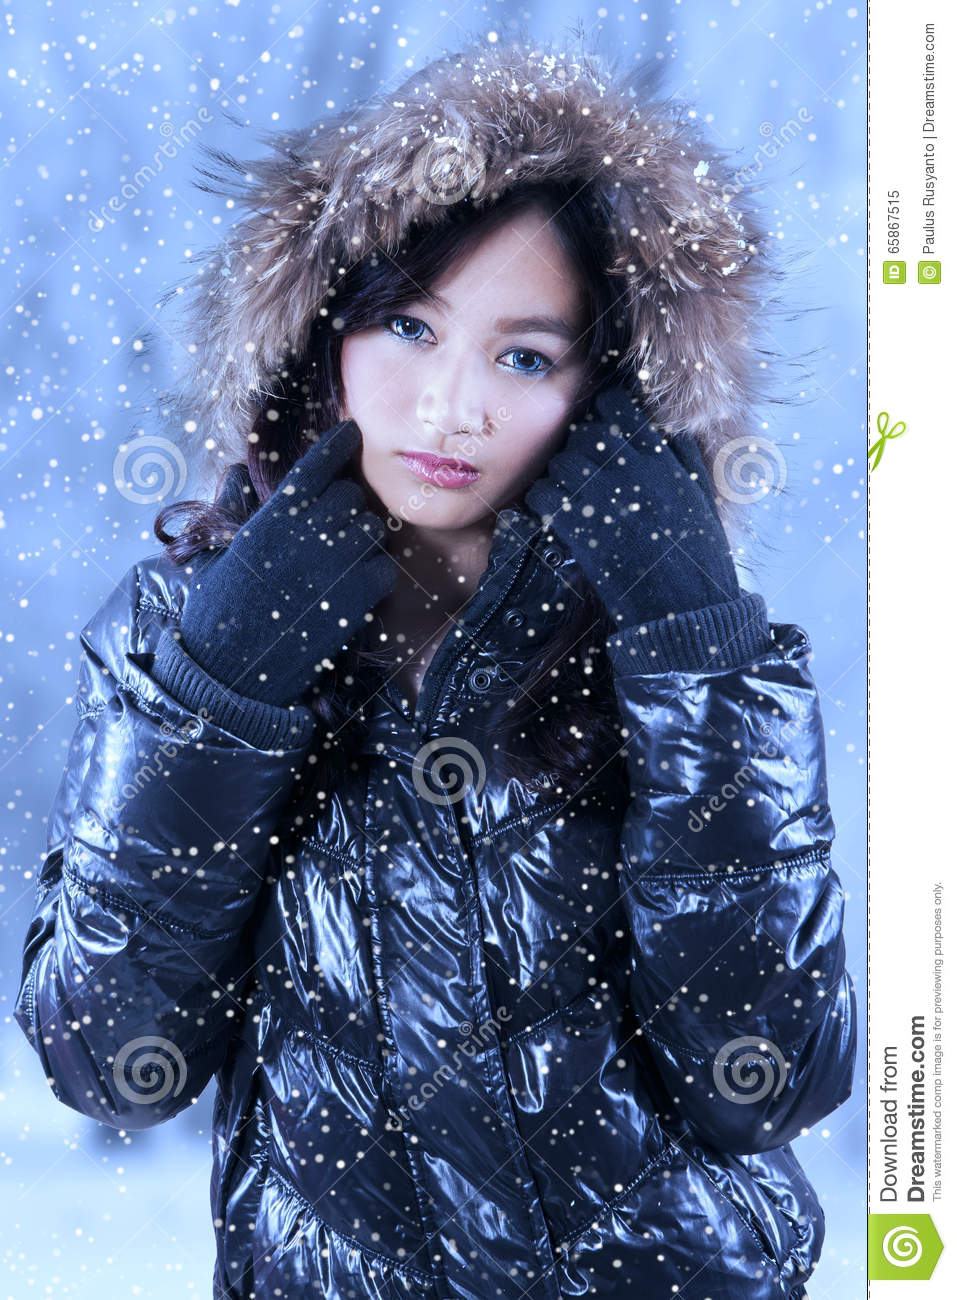 d14f9c827cc8 Charming Girl Wearing Winter Clothes Stock Image - Image of ...